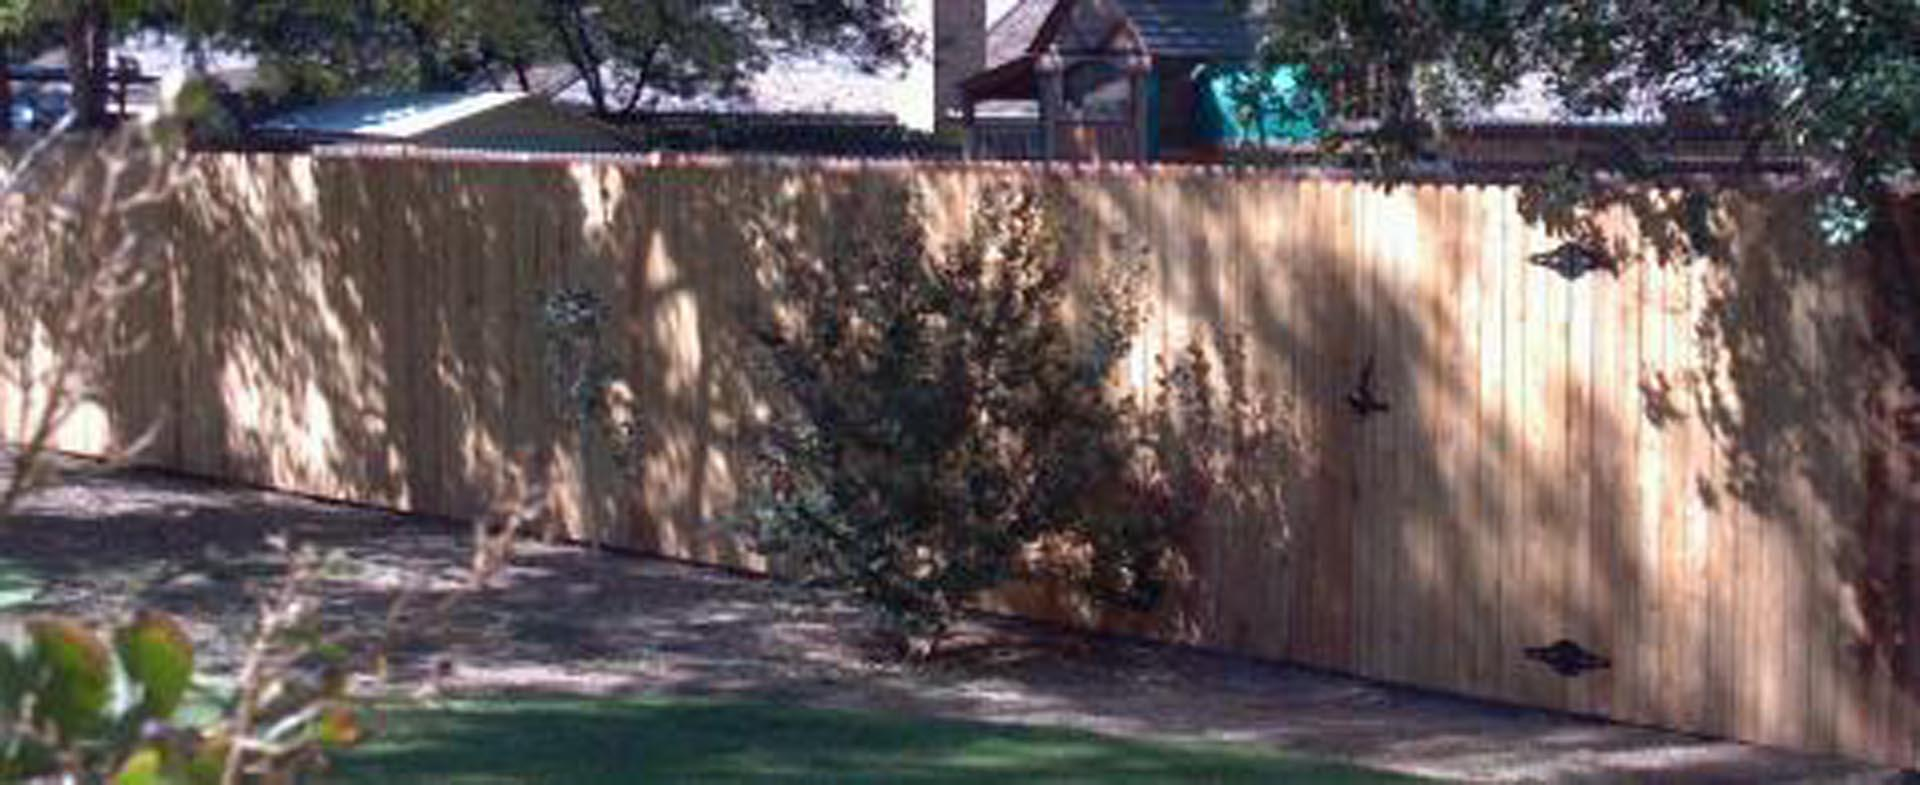 Best Value Fencing And Home Services image 23